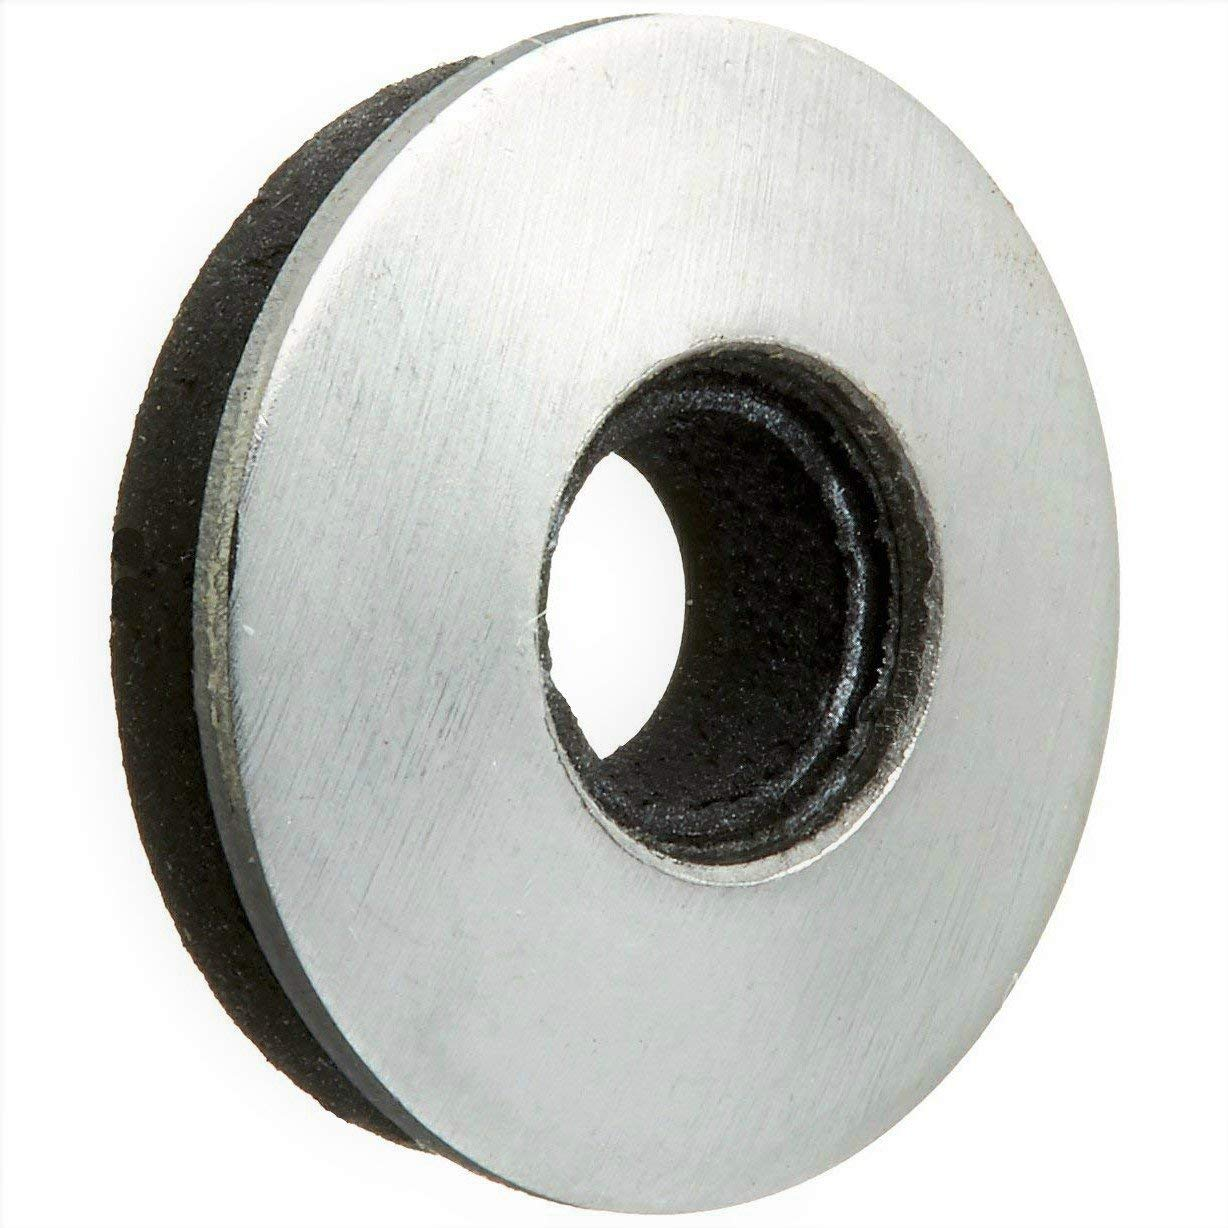 SNUG Fasteners (SNG742) 500 Qty 1/4'' Stainless Steel EPDM Bonded Sealing Neoprene Rubber Washers #14 by SNUG Fasteners